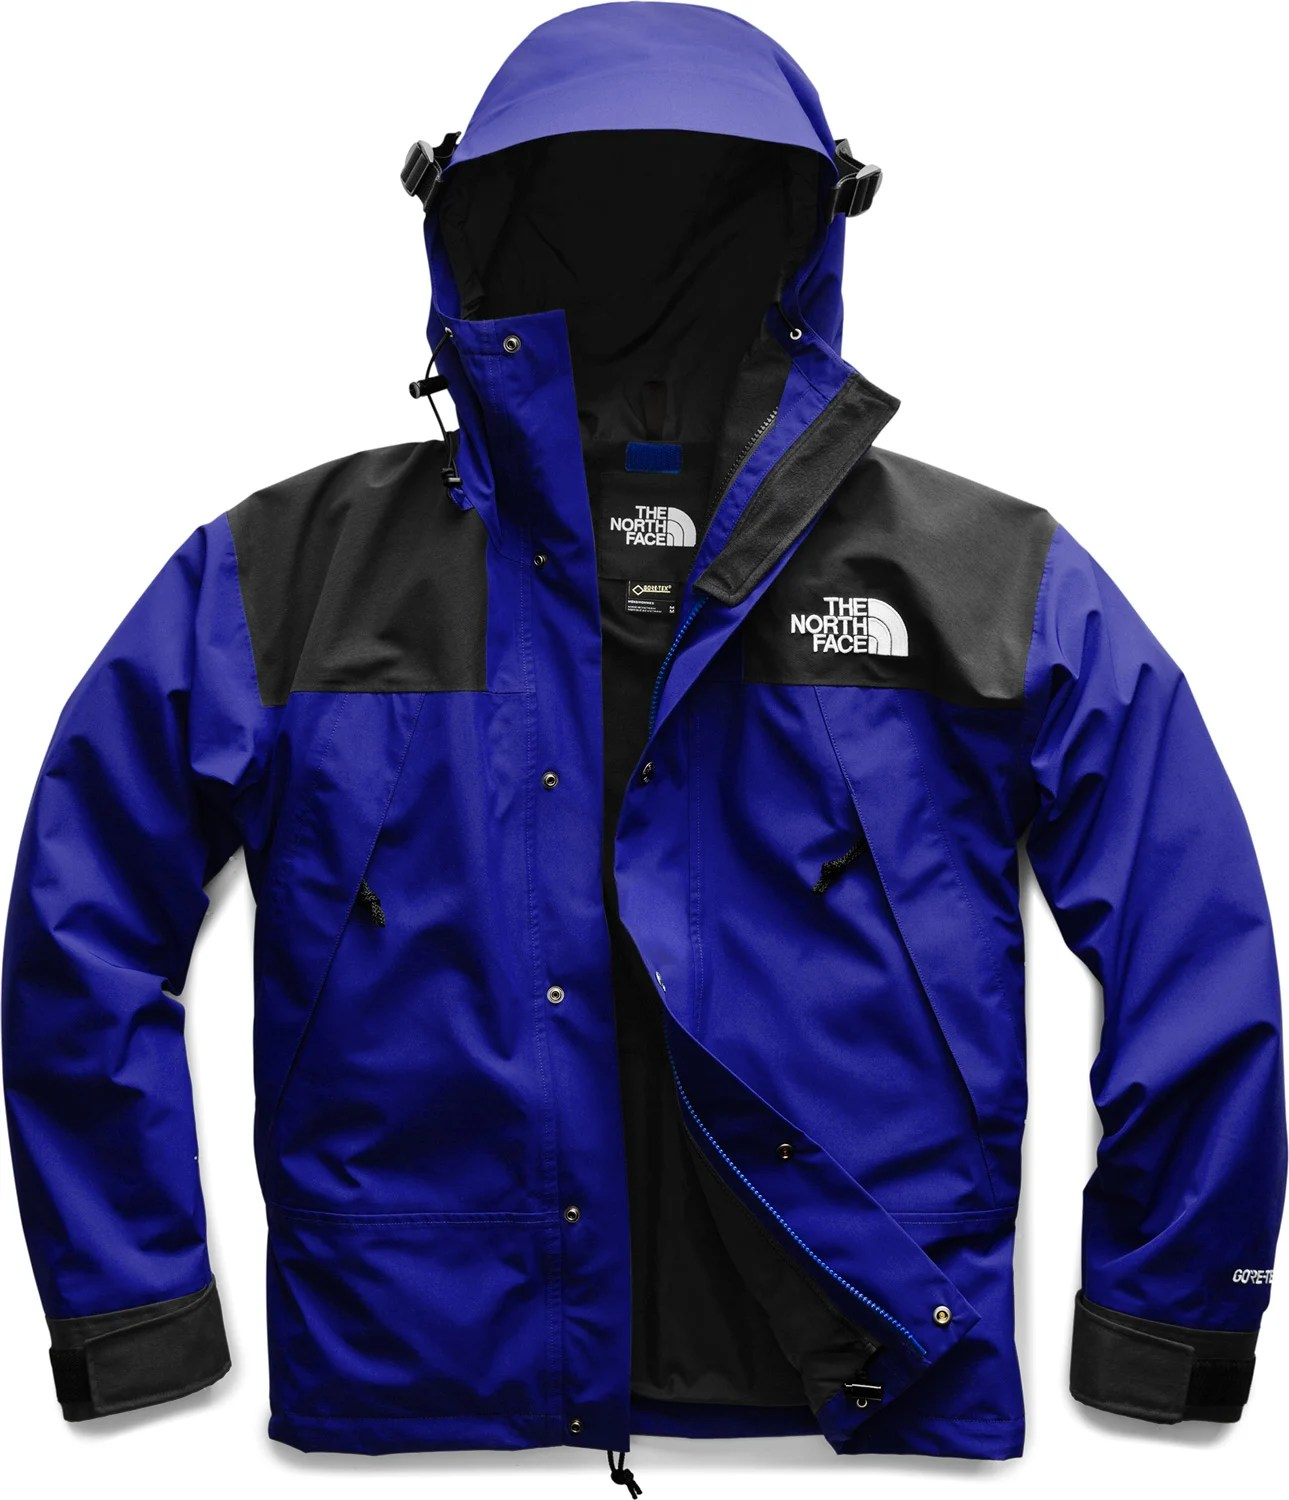 The North Face 1990 Mountain Gore-Tex Jacket